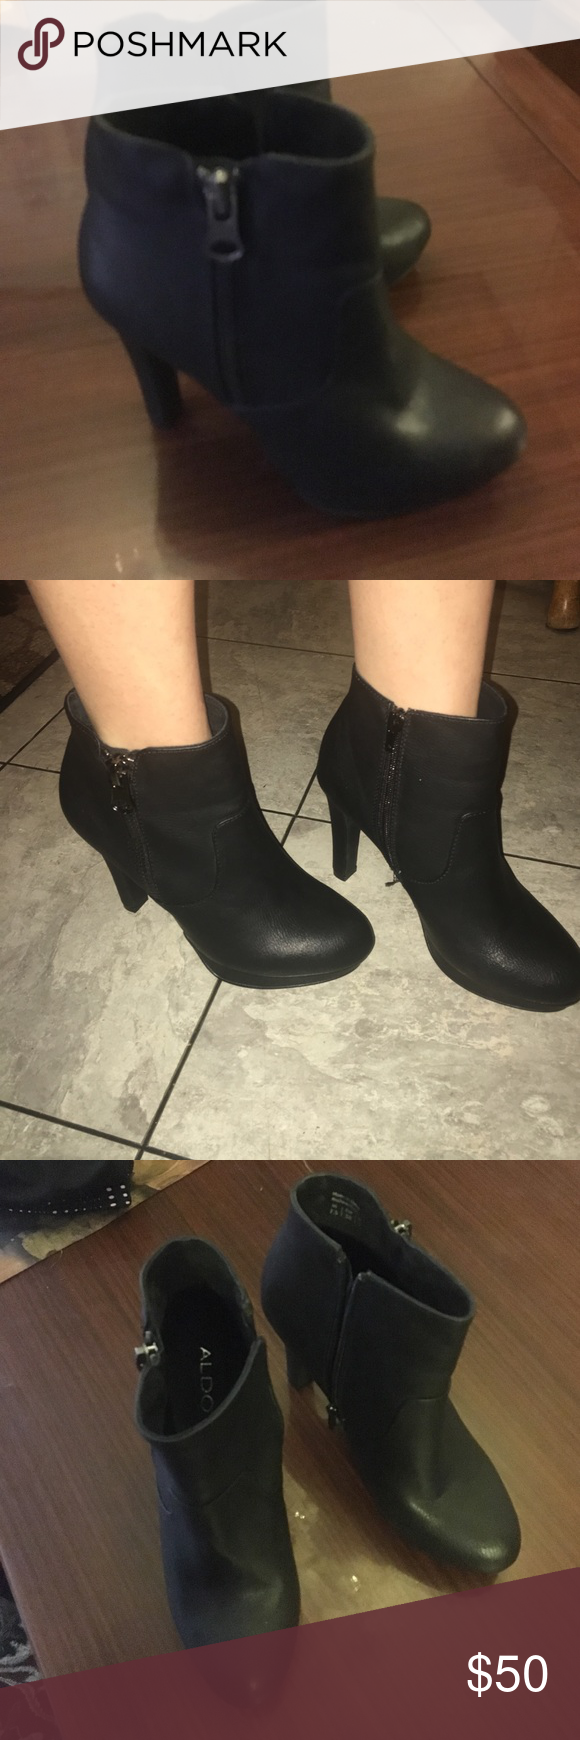 Aldo booties Only worn once. Practically brand new!! ALDO Shoes Heeled Boots